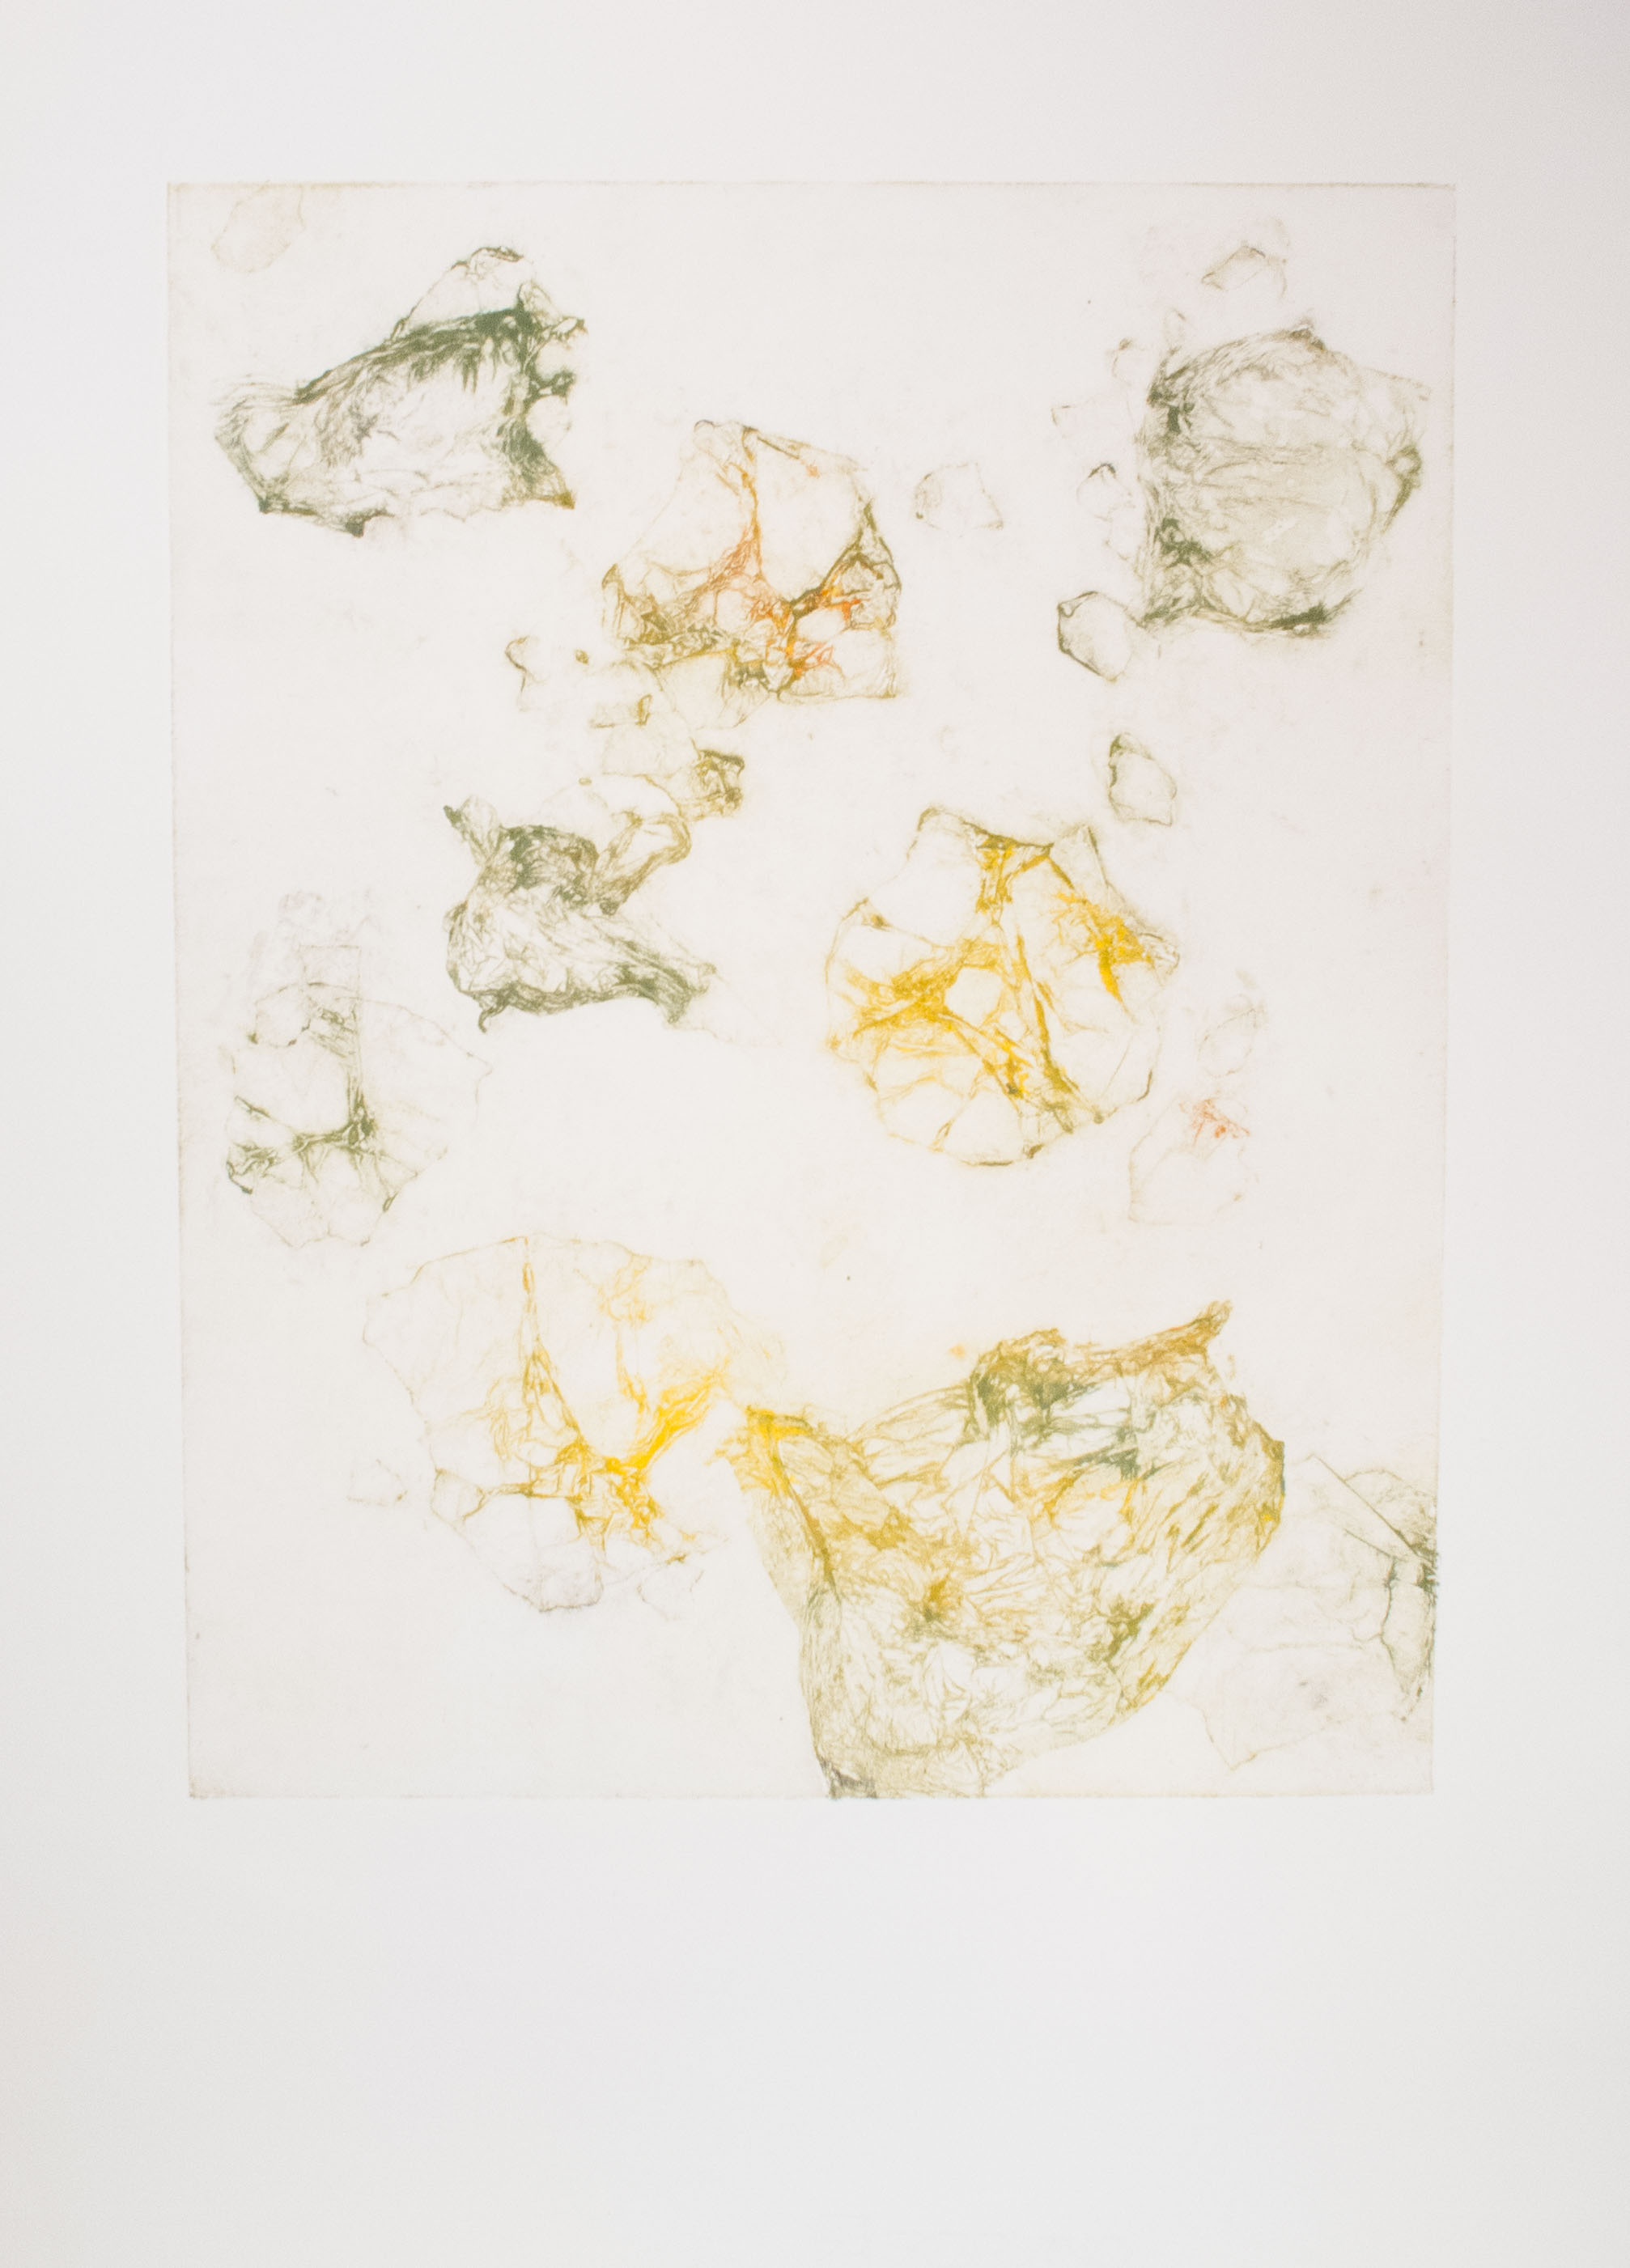 Meandering collagraph monoprint 30 x 24 inches ASC 115G